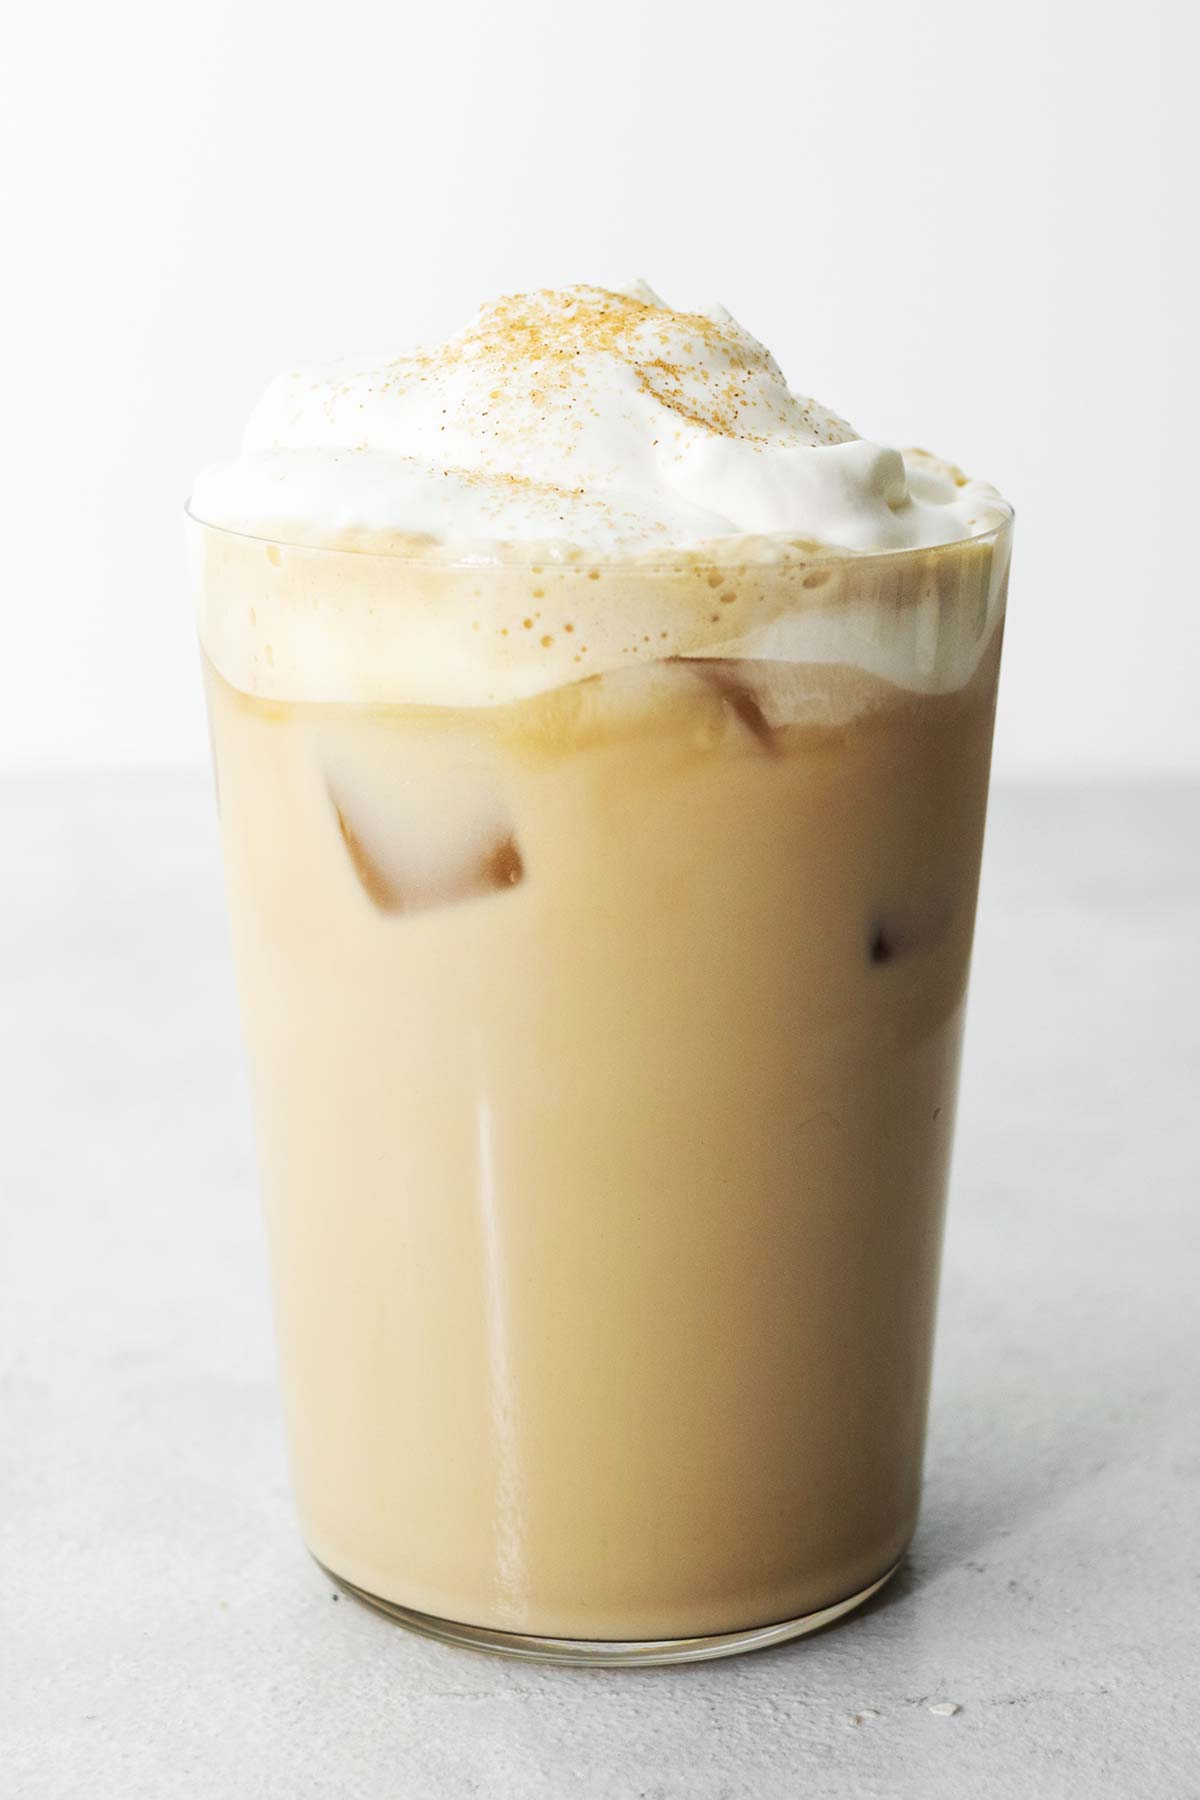 Starbucks Iced Cinnamon Dolce Latte copycat drink in a cup.